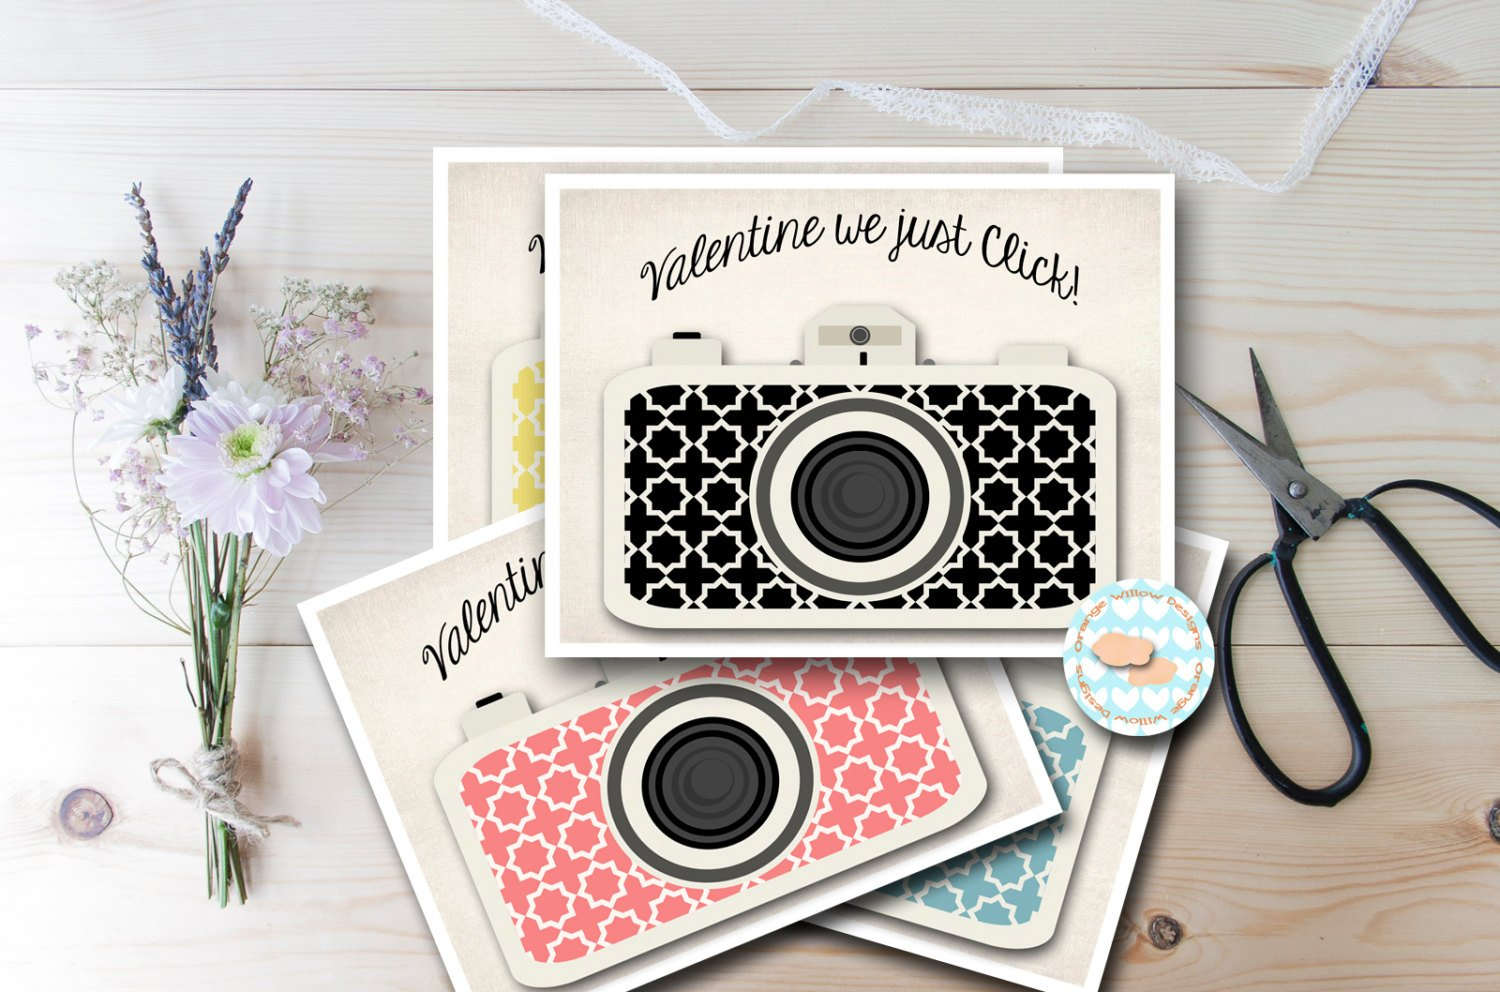 We Just Click downloadable valentine by  Orange Willow Designs